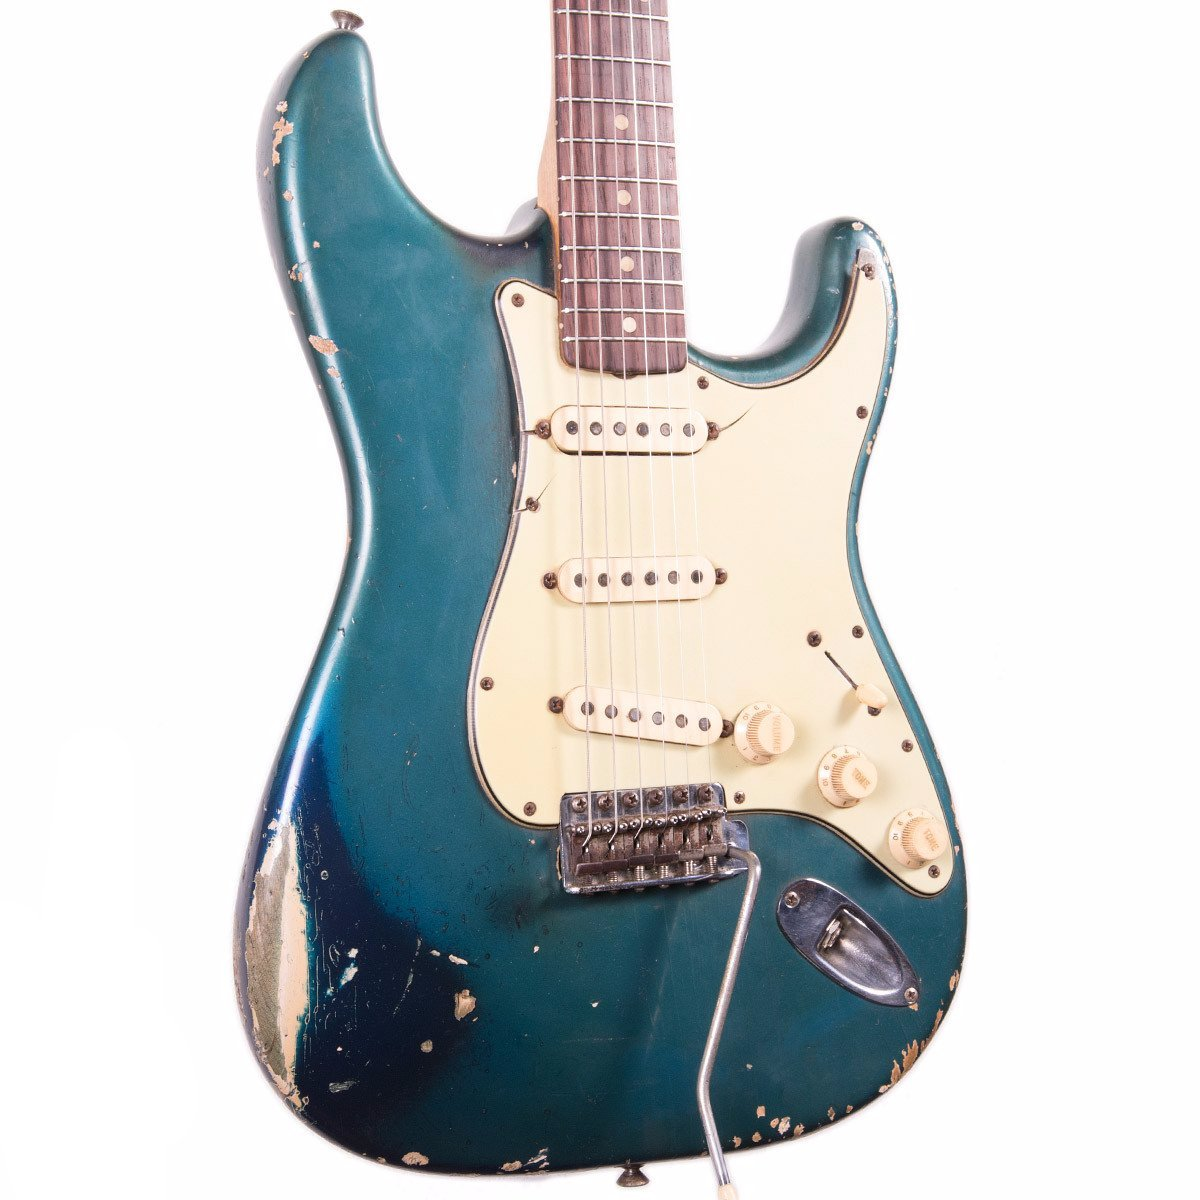 1963 Fender Stratocaster - Lake Placid Blue - Vintage Guitar Boutique